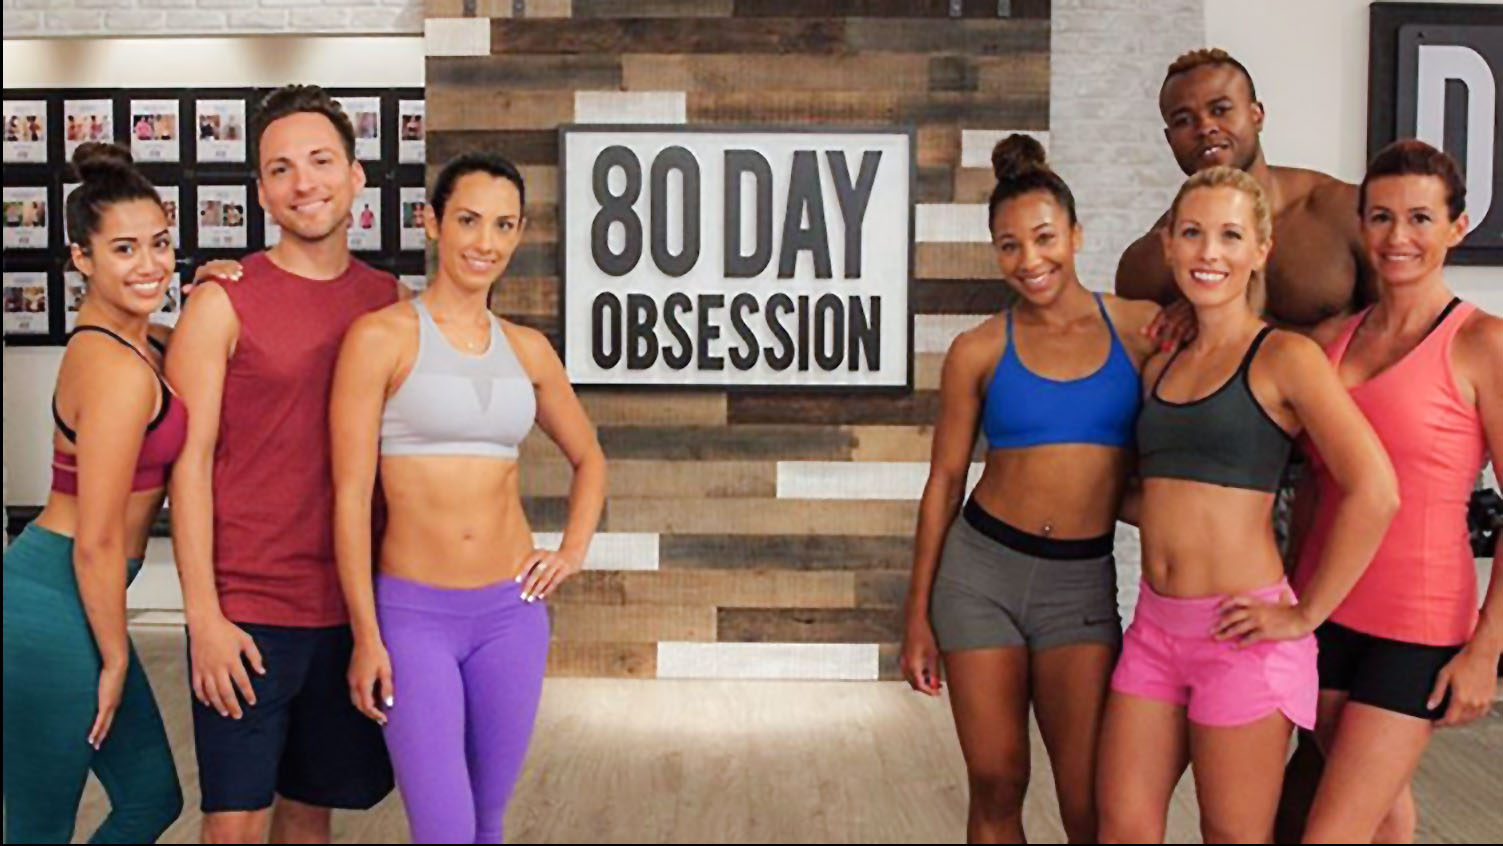 80 day obsession, results, meal plan, workouts